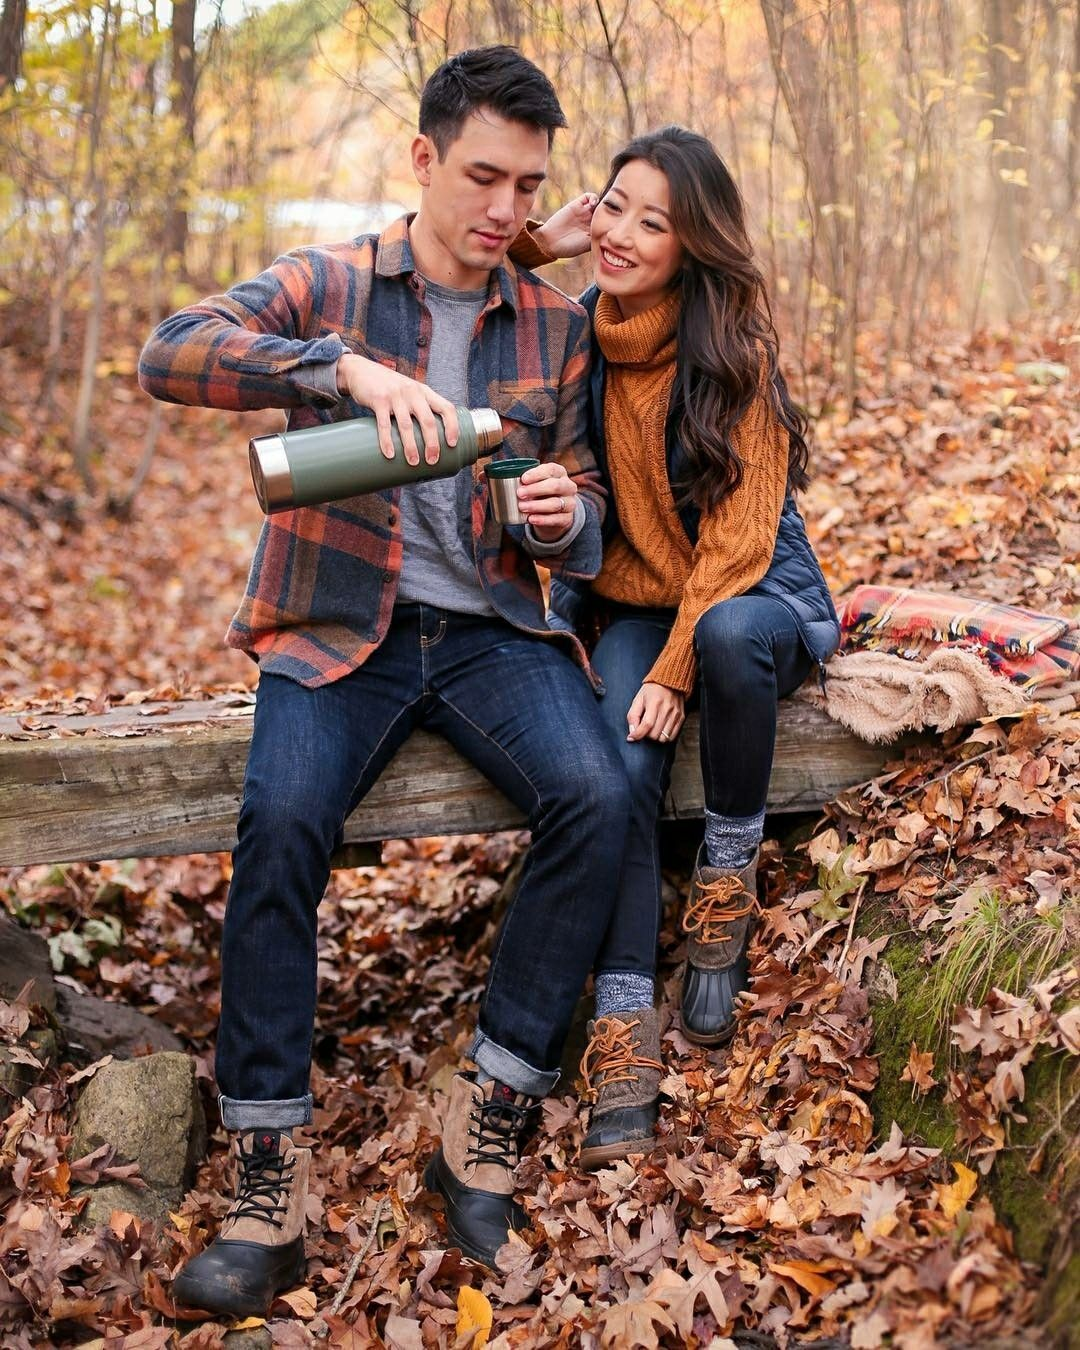 Plaid shirt, coordinating solid colored sweater, blue jeans, hiking boots. Great for an outdoor hiking session!